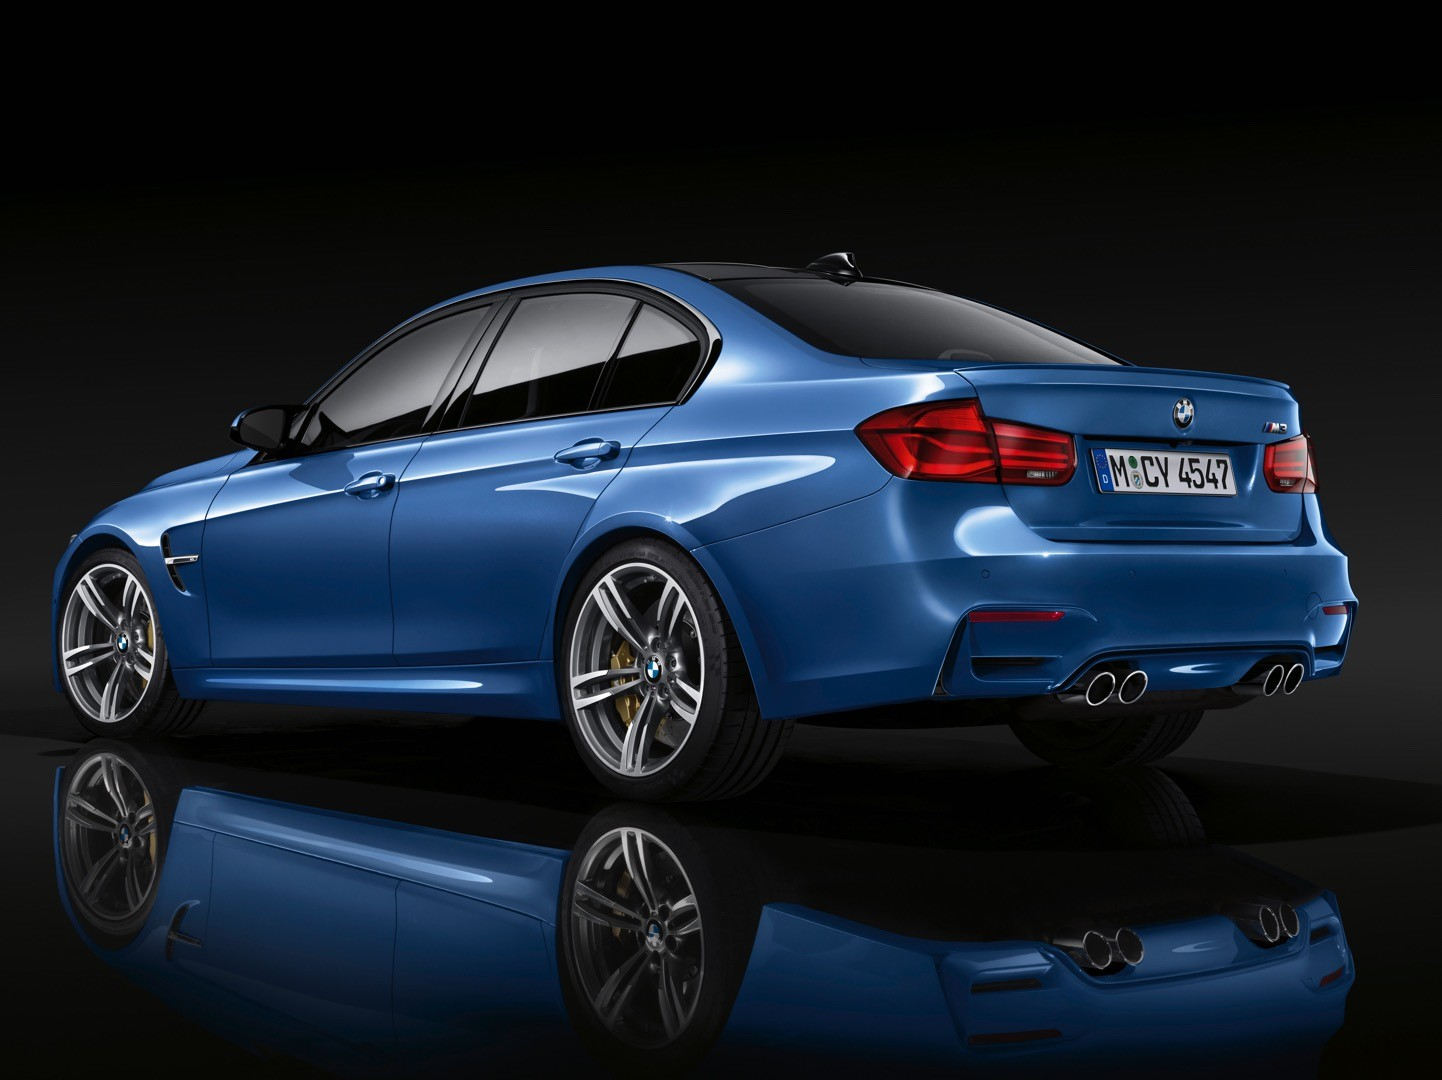 2016 Bmw M3 Facelift Has Two New Paint Colors Available As Well As